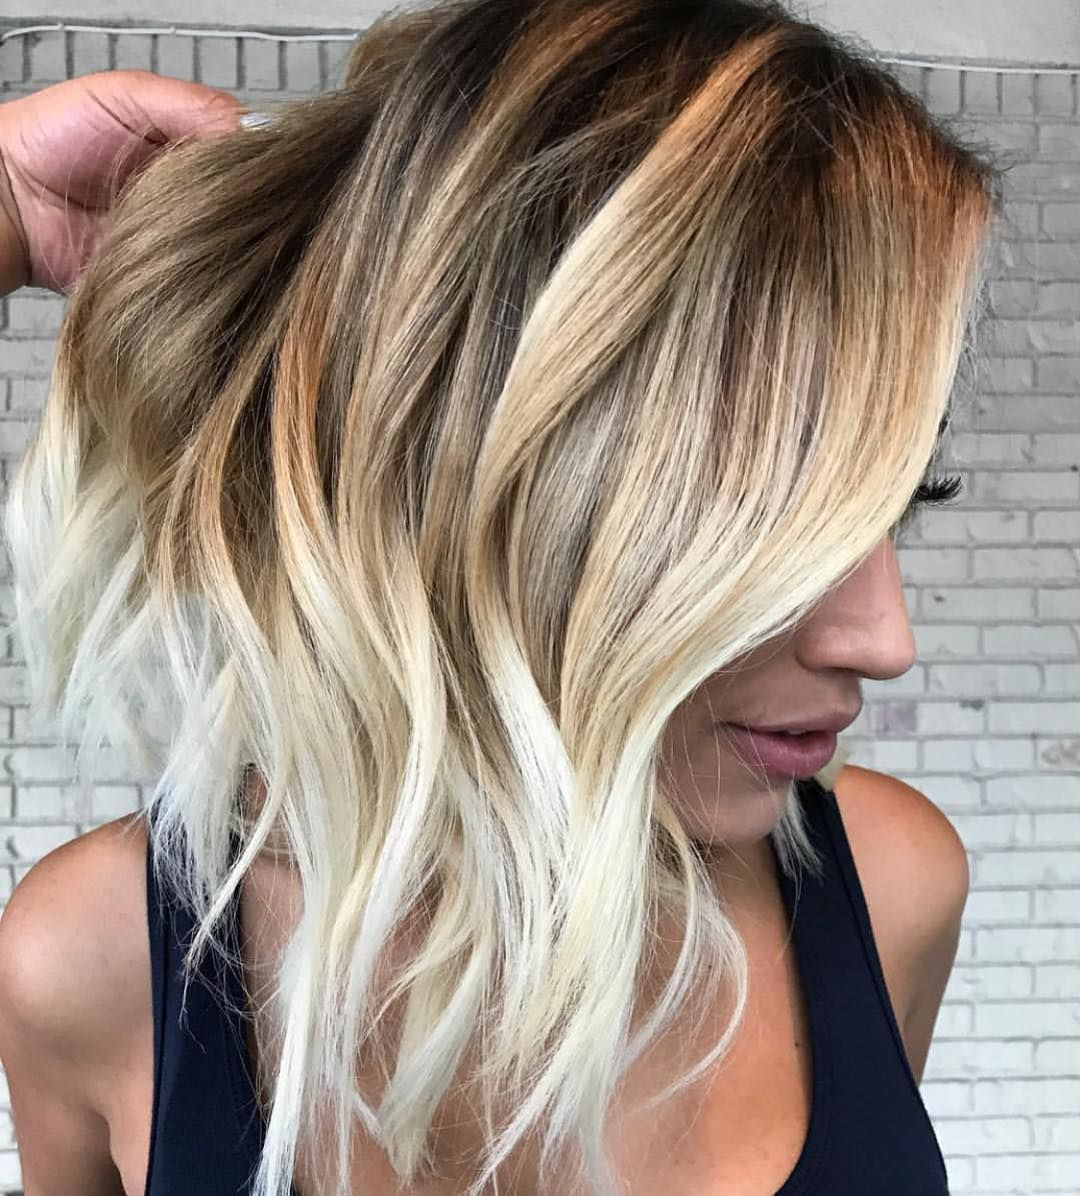 Hairstyles For Women Fall 2020 Hairstyles Pictures Womens Hairstyles Hair Styles Long Hair Styles